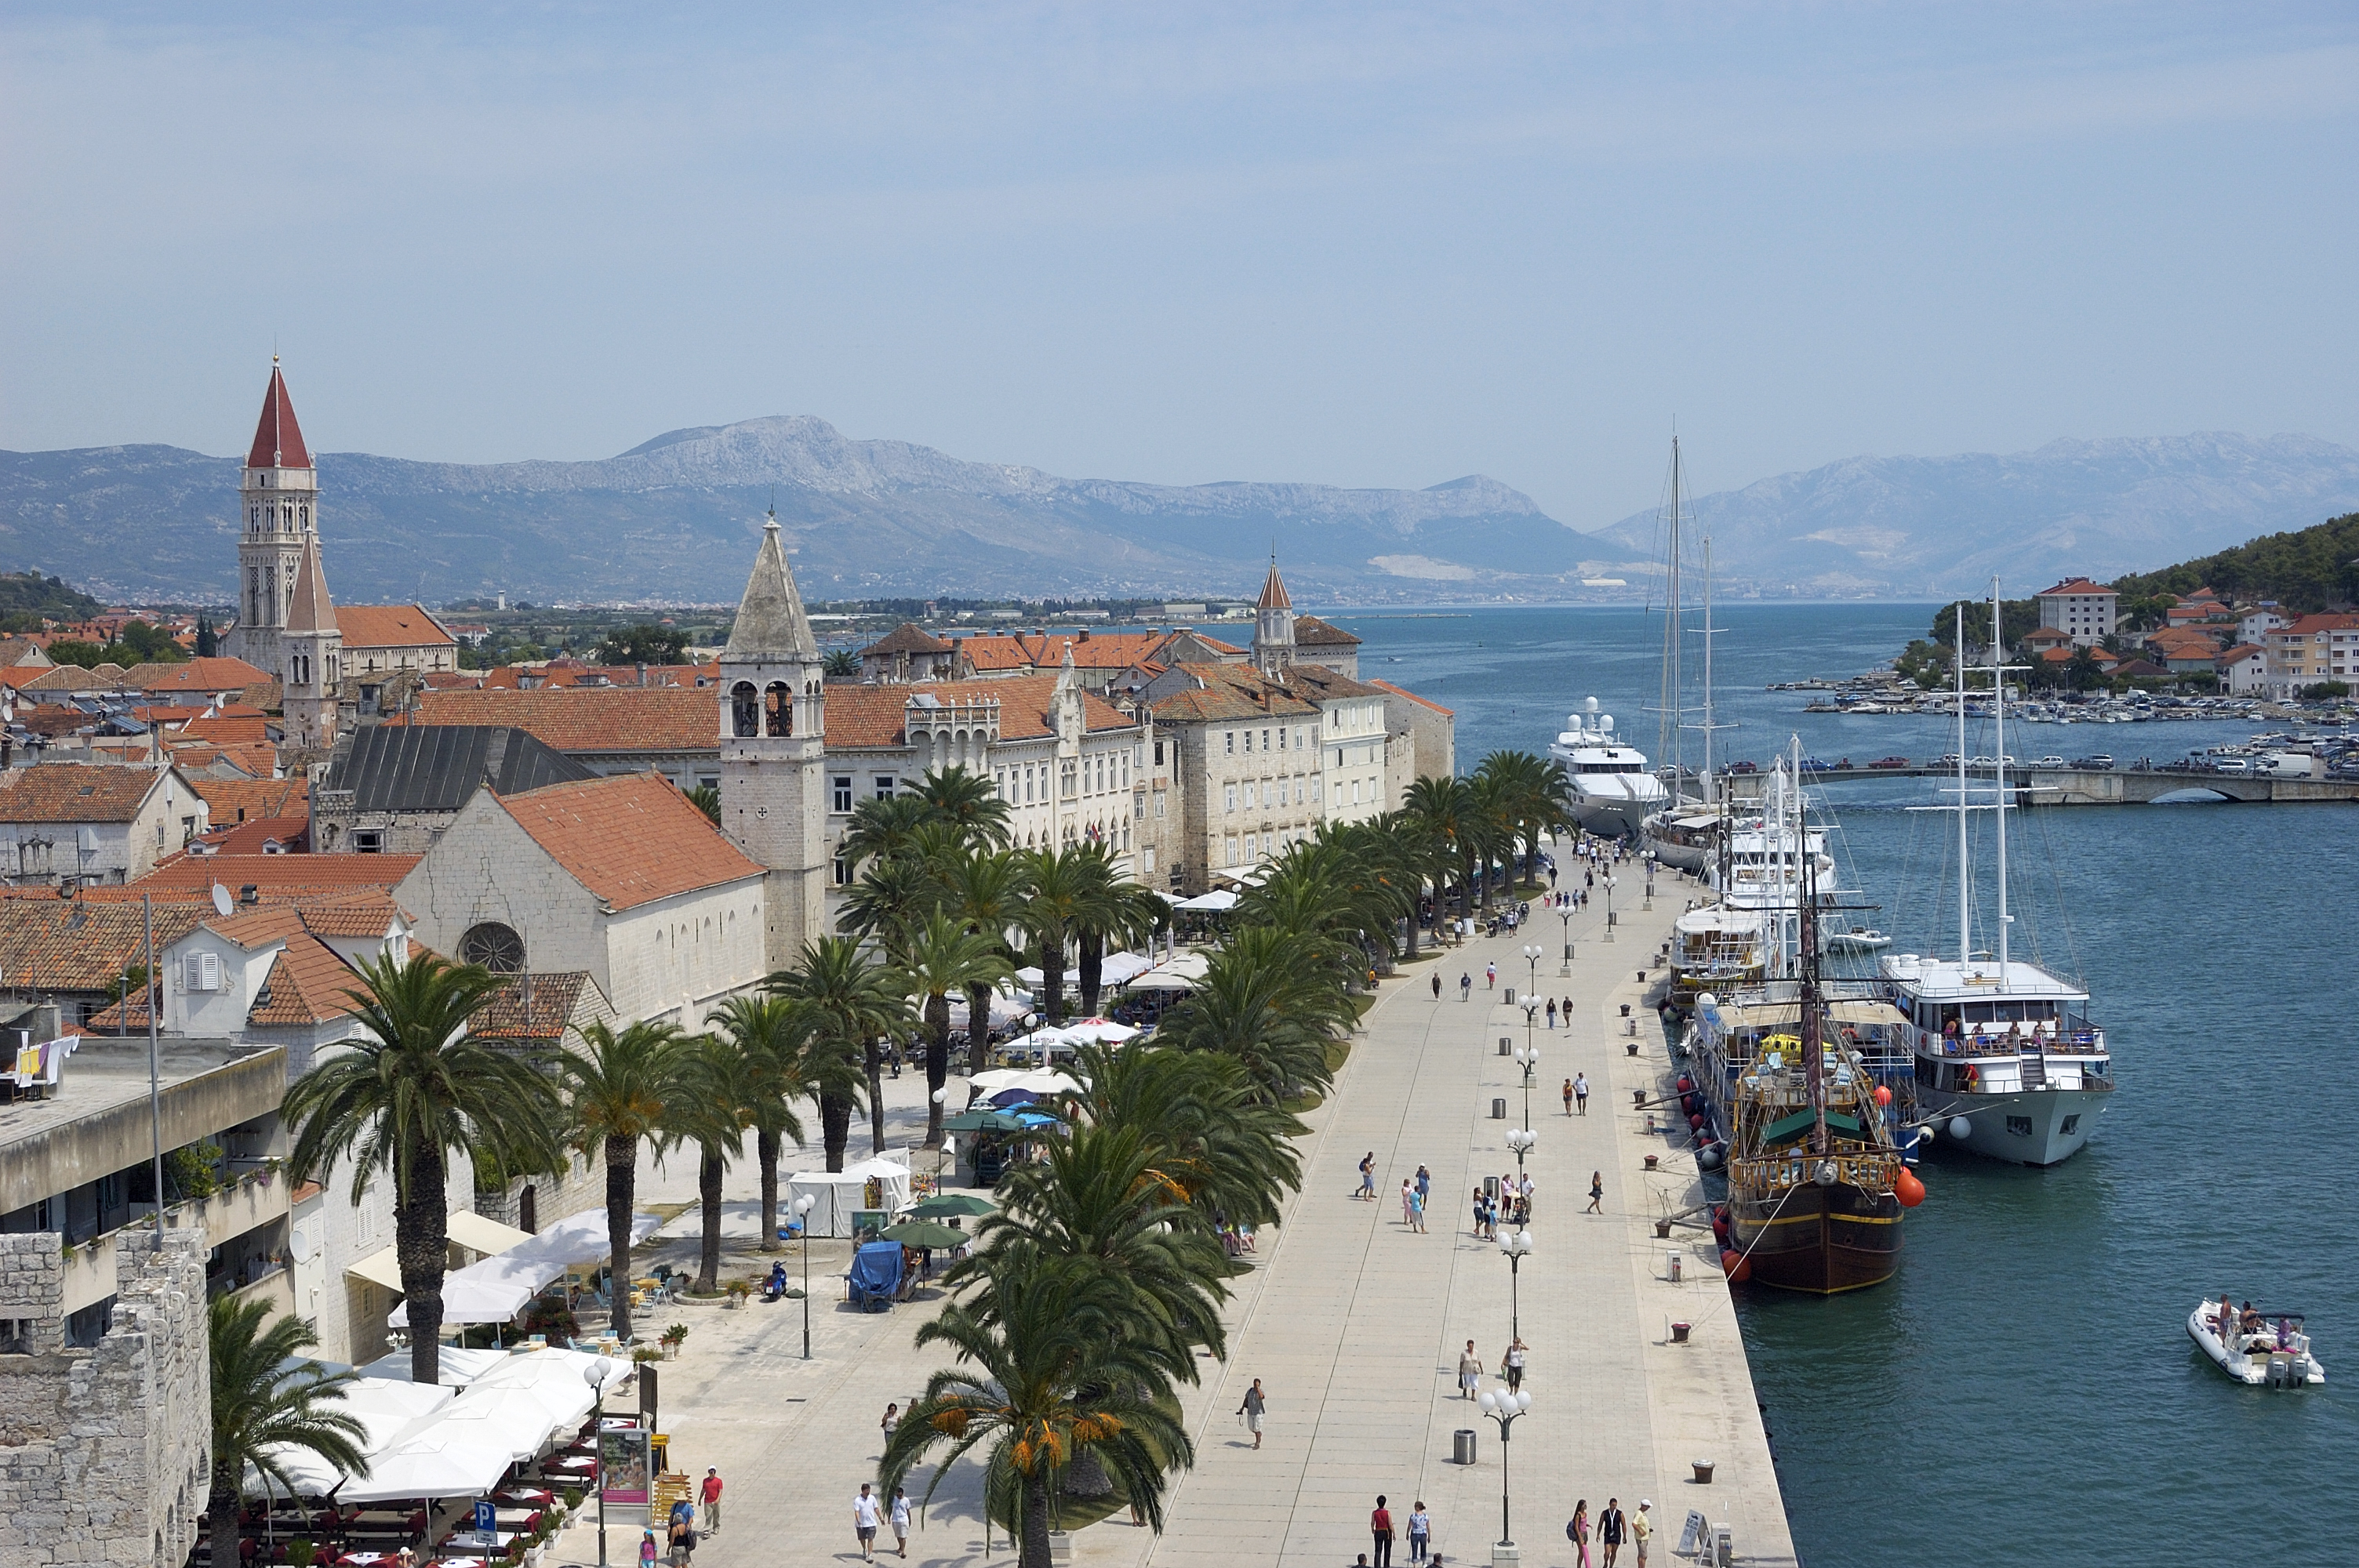 Trogir, UNESCO world heritage